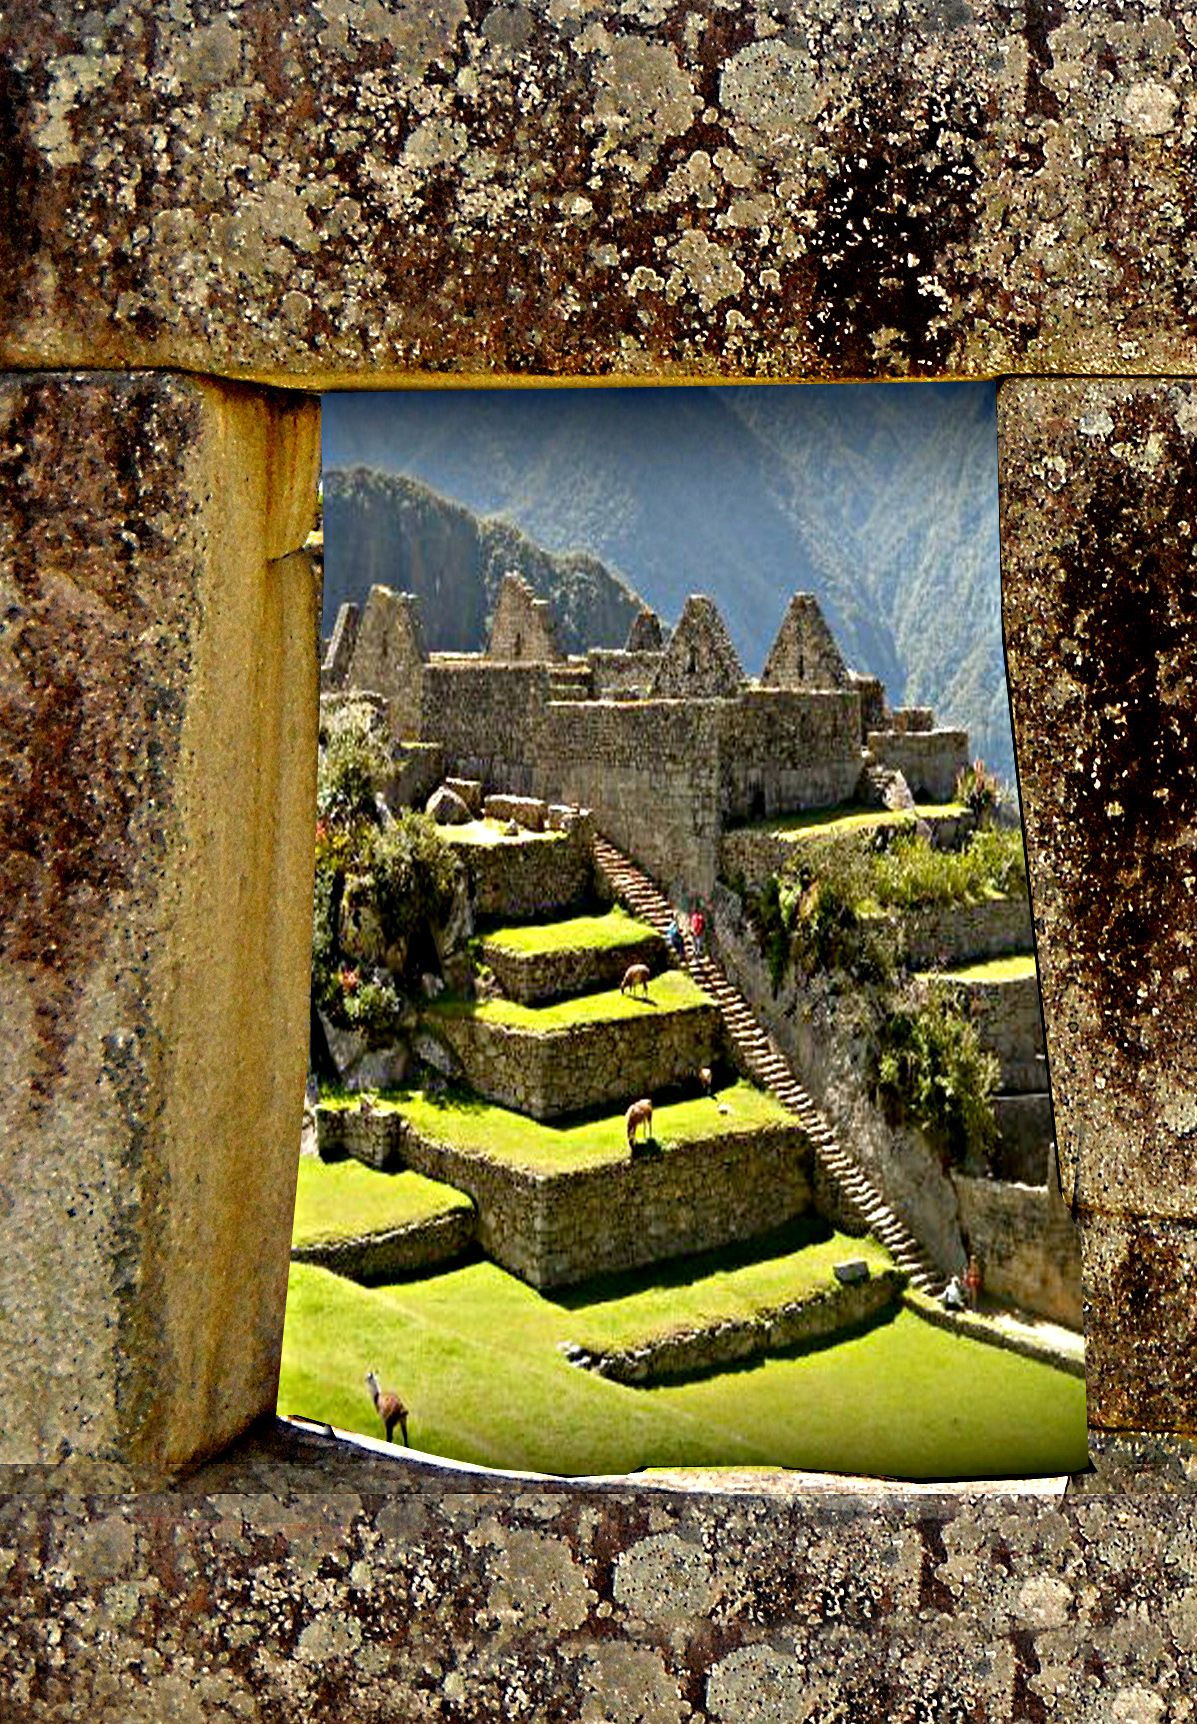 Once inhabited by many, partial structures remain and maintain such a historical value to be admired by all.  Even now, life exists upon and around this fallen city.  For if one walks upon and natural stairway, one will hear sounds of long ago.   Machu Picchu - Perú